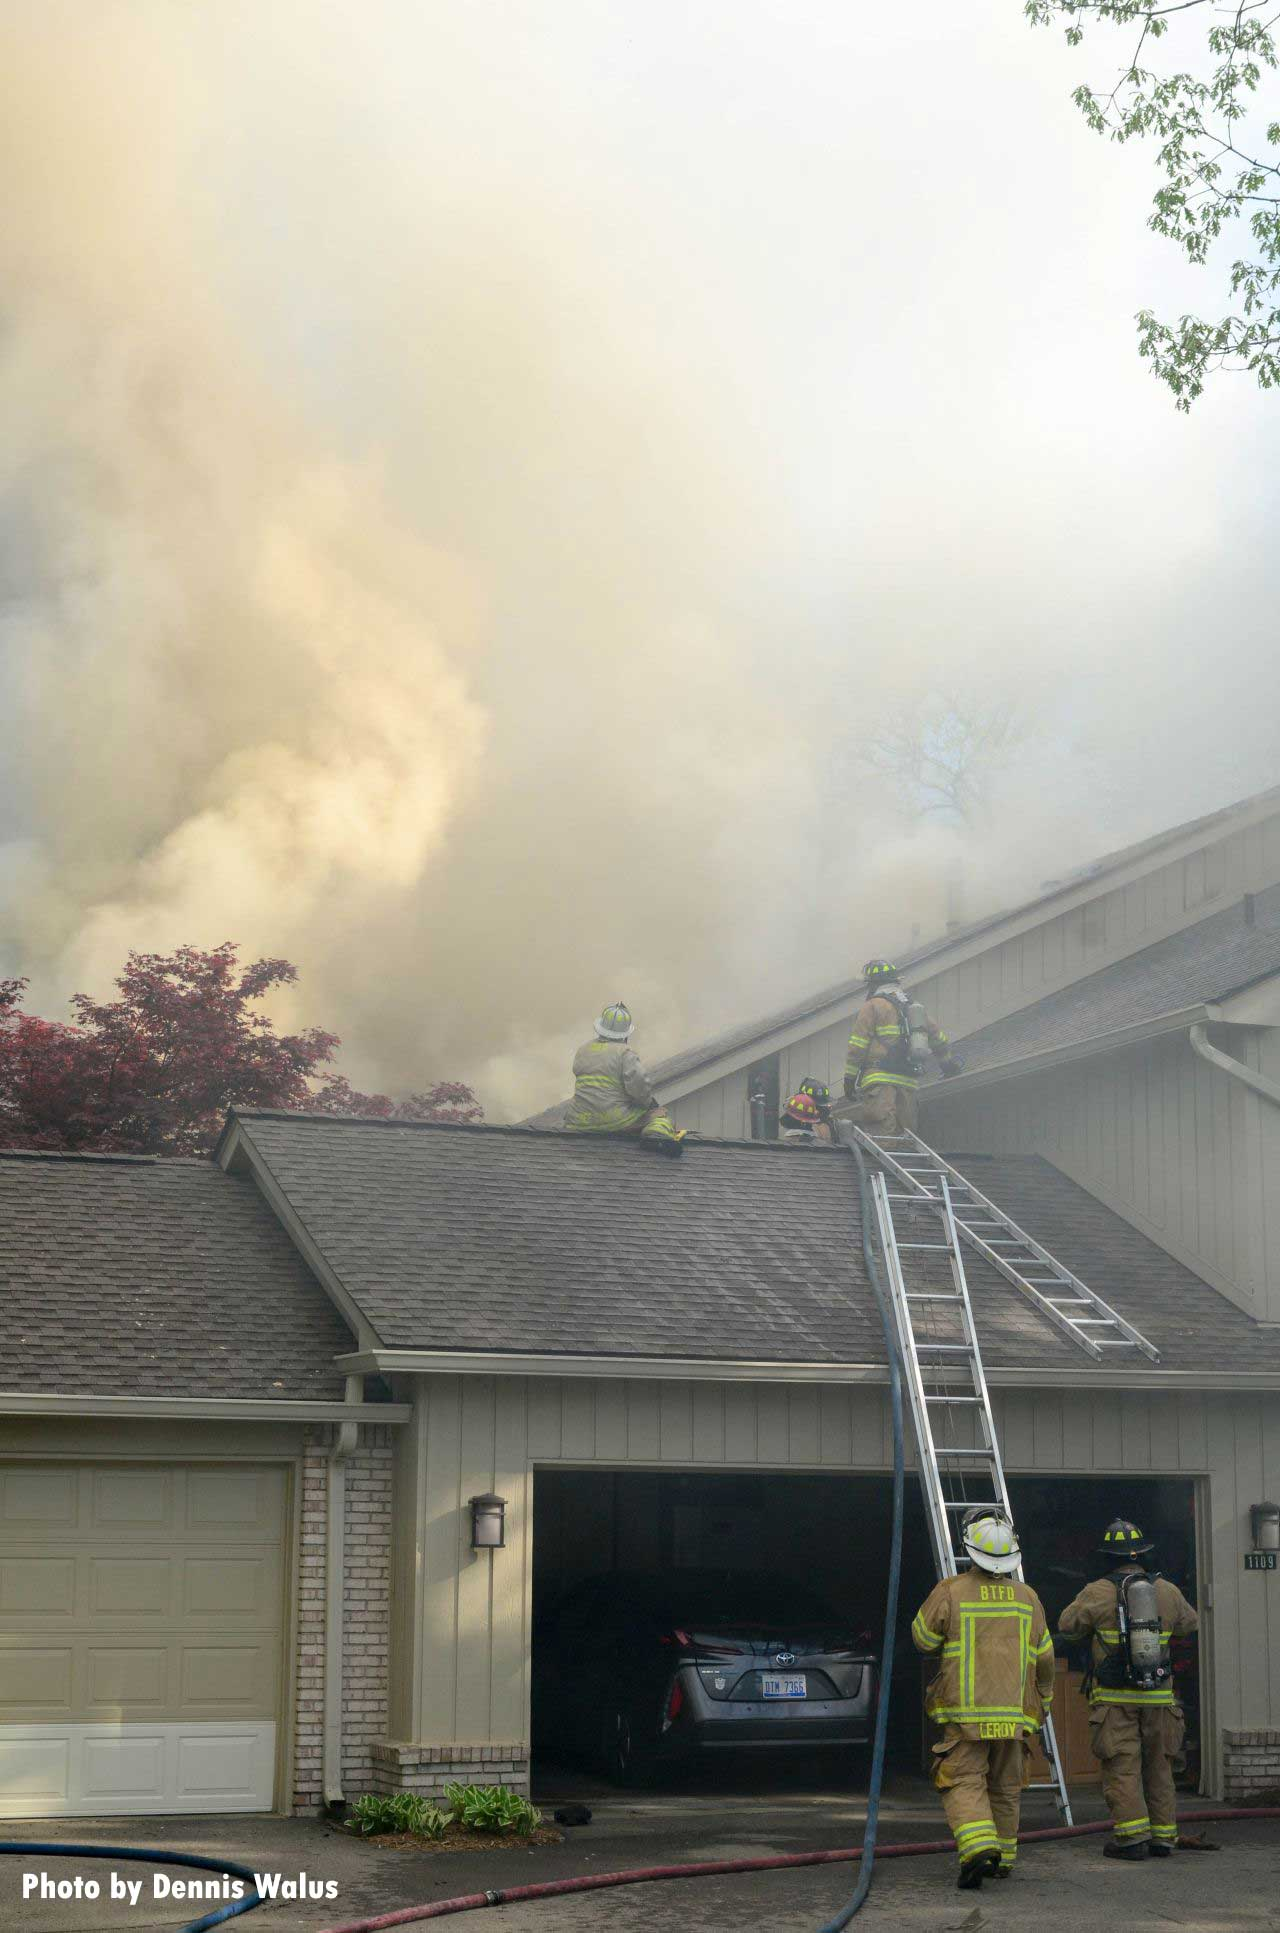 Firefighters on the roof with smoke billowing out of the condo